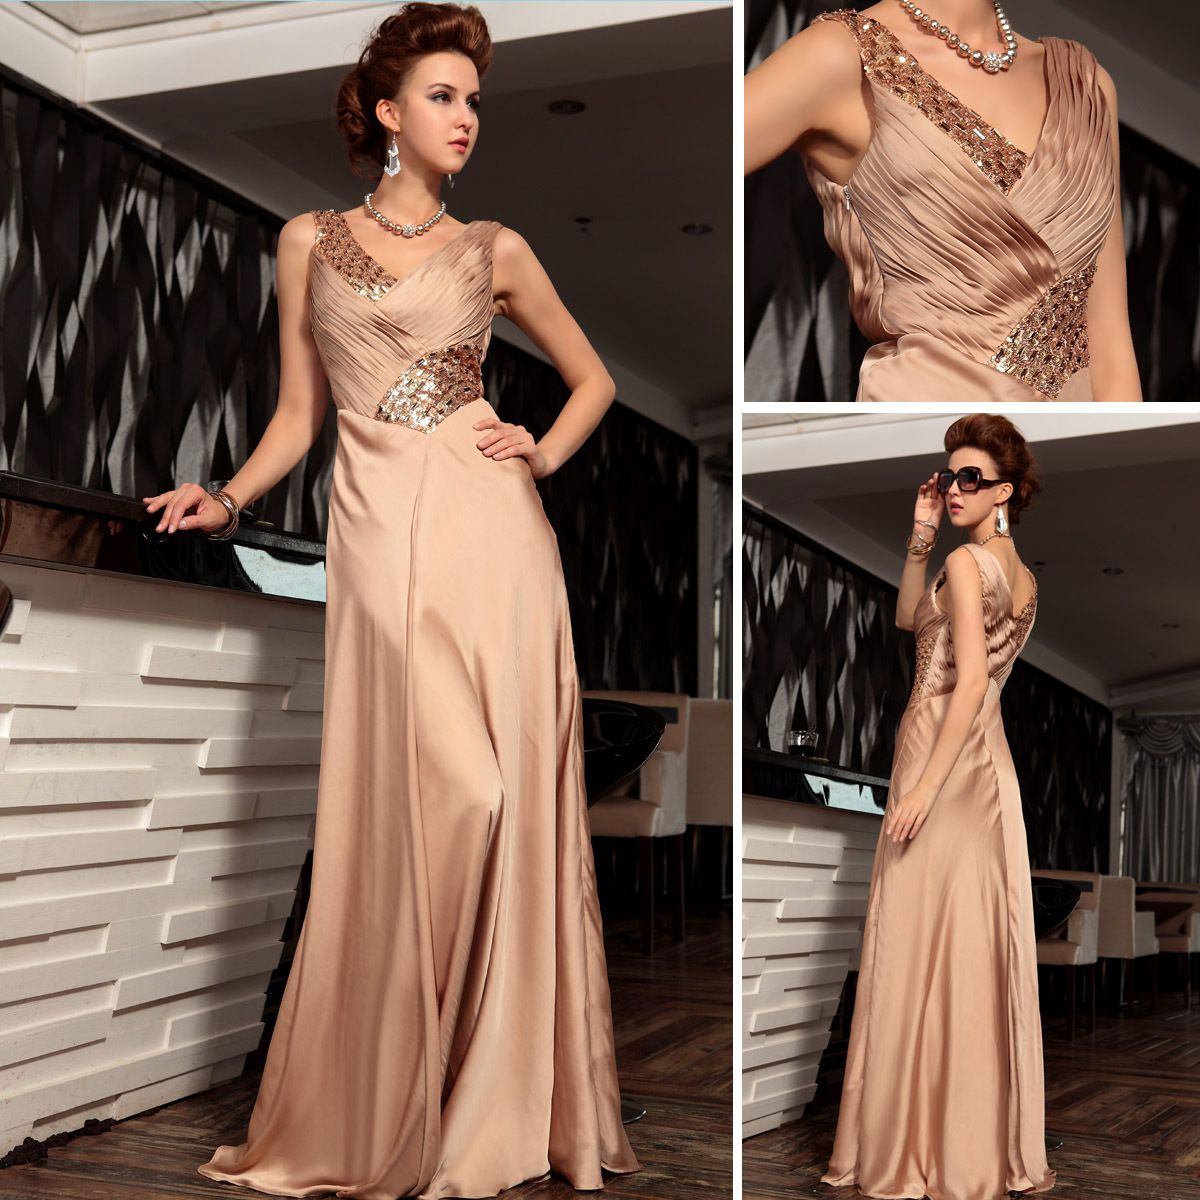 Wedding Champagne Colored Dresses collection champagne colored dresses pictures fashion trends and color 2013 on pinterest